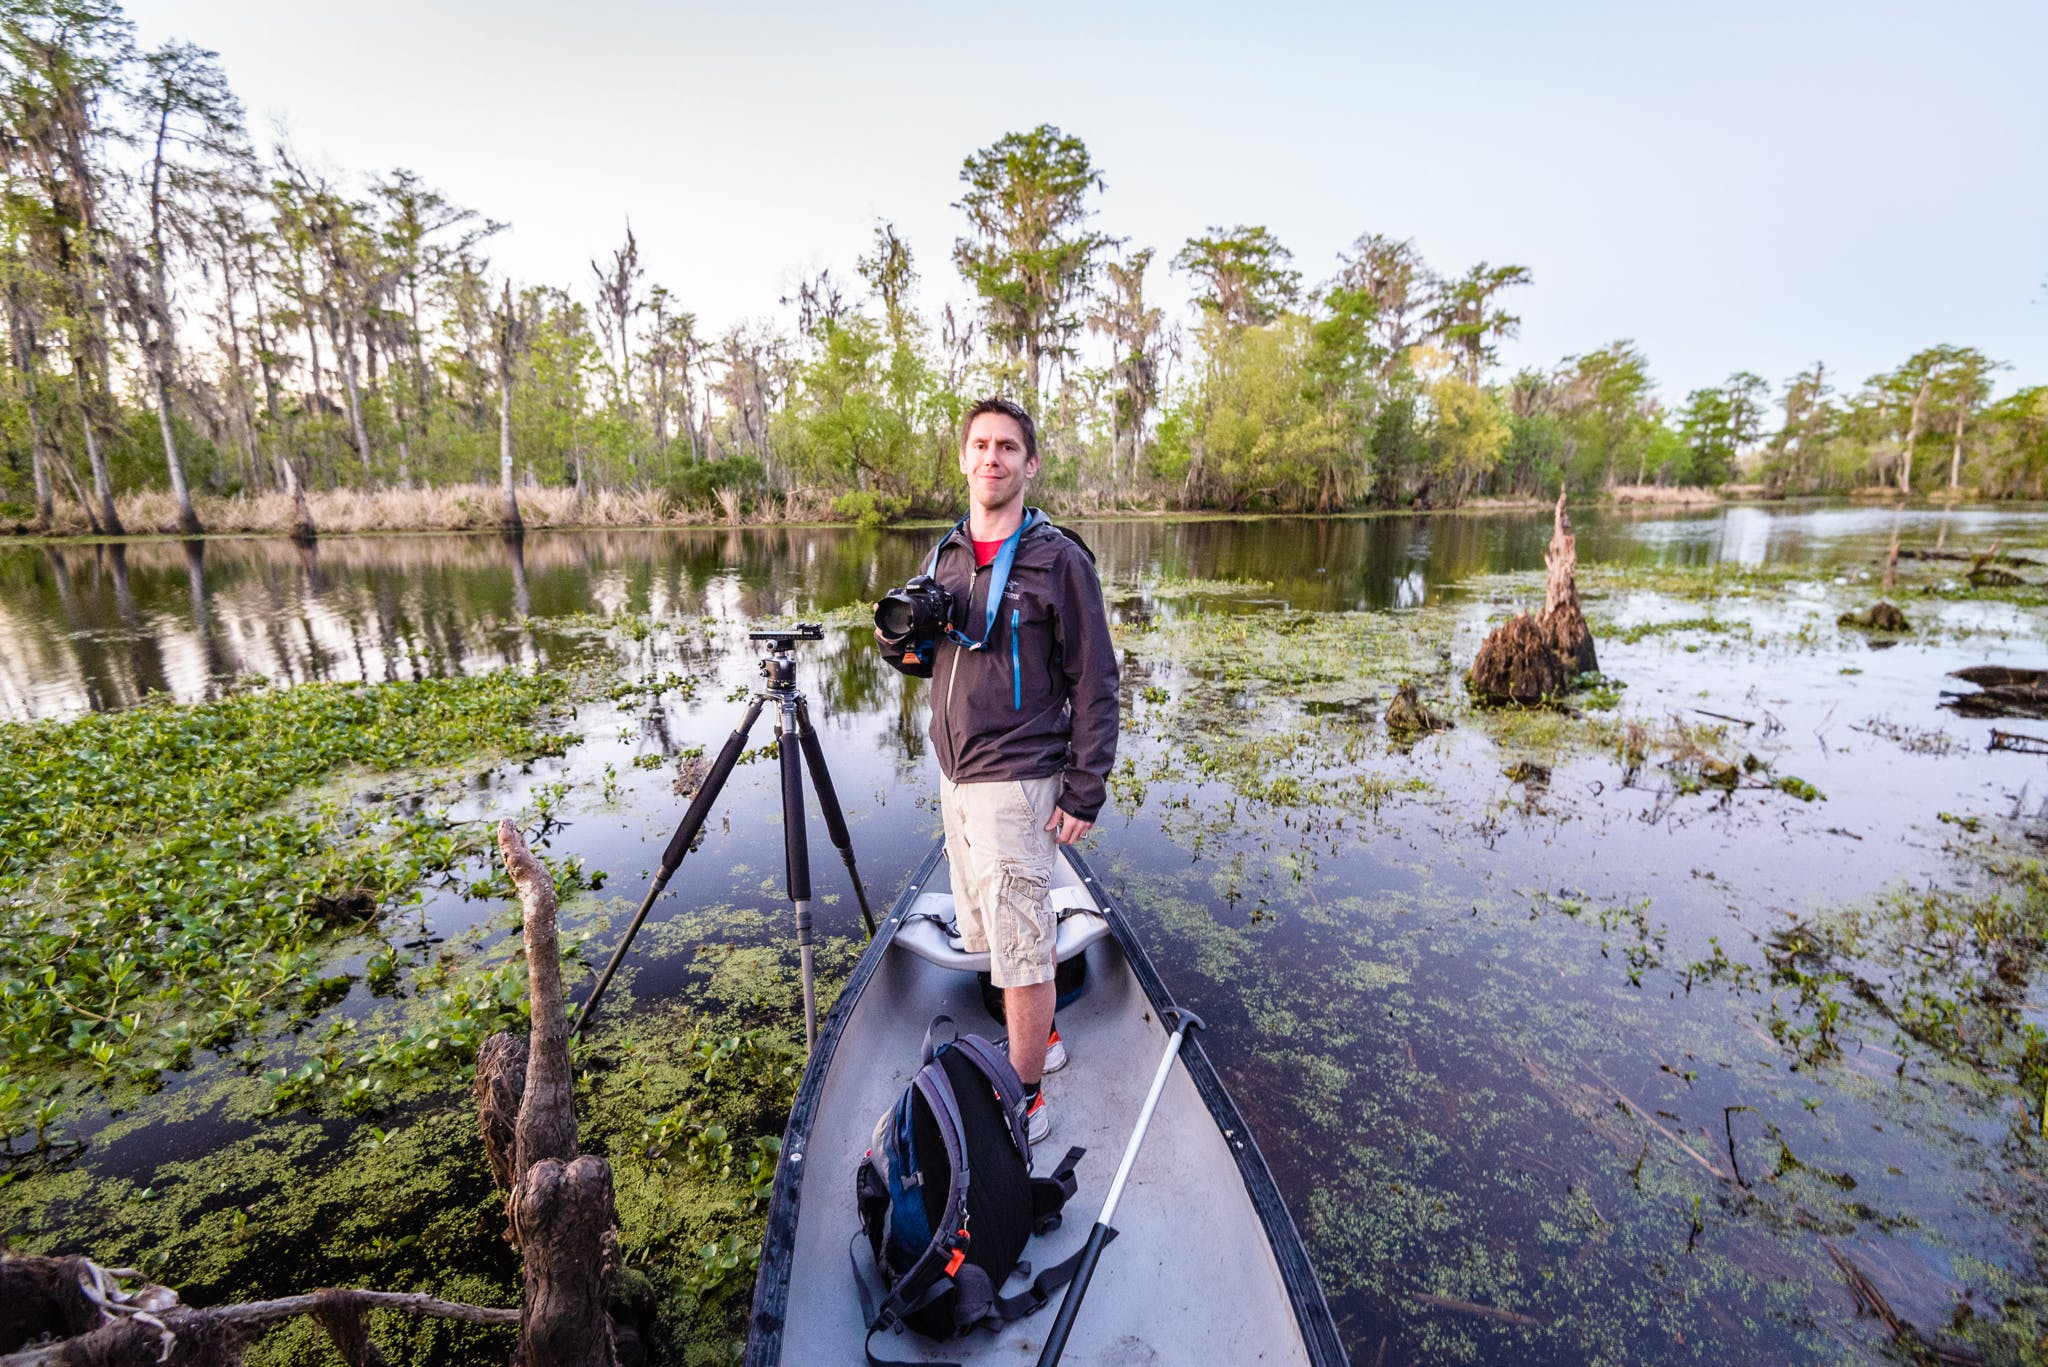 swamp photo workshop, photo workshop, cypress swamp photography